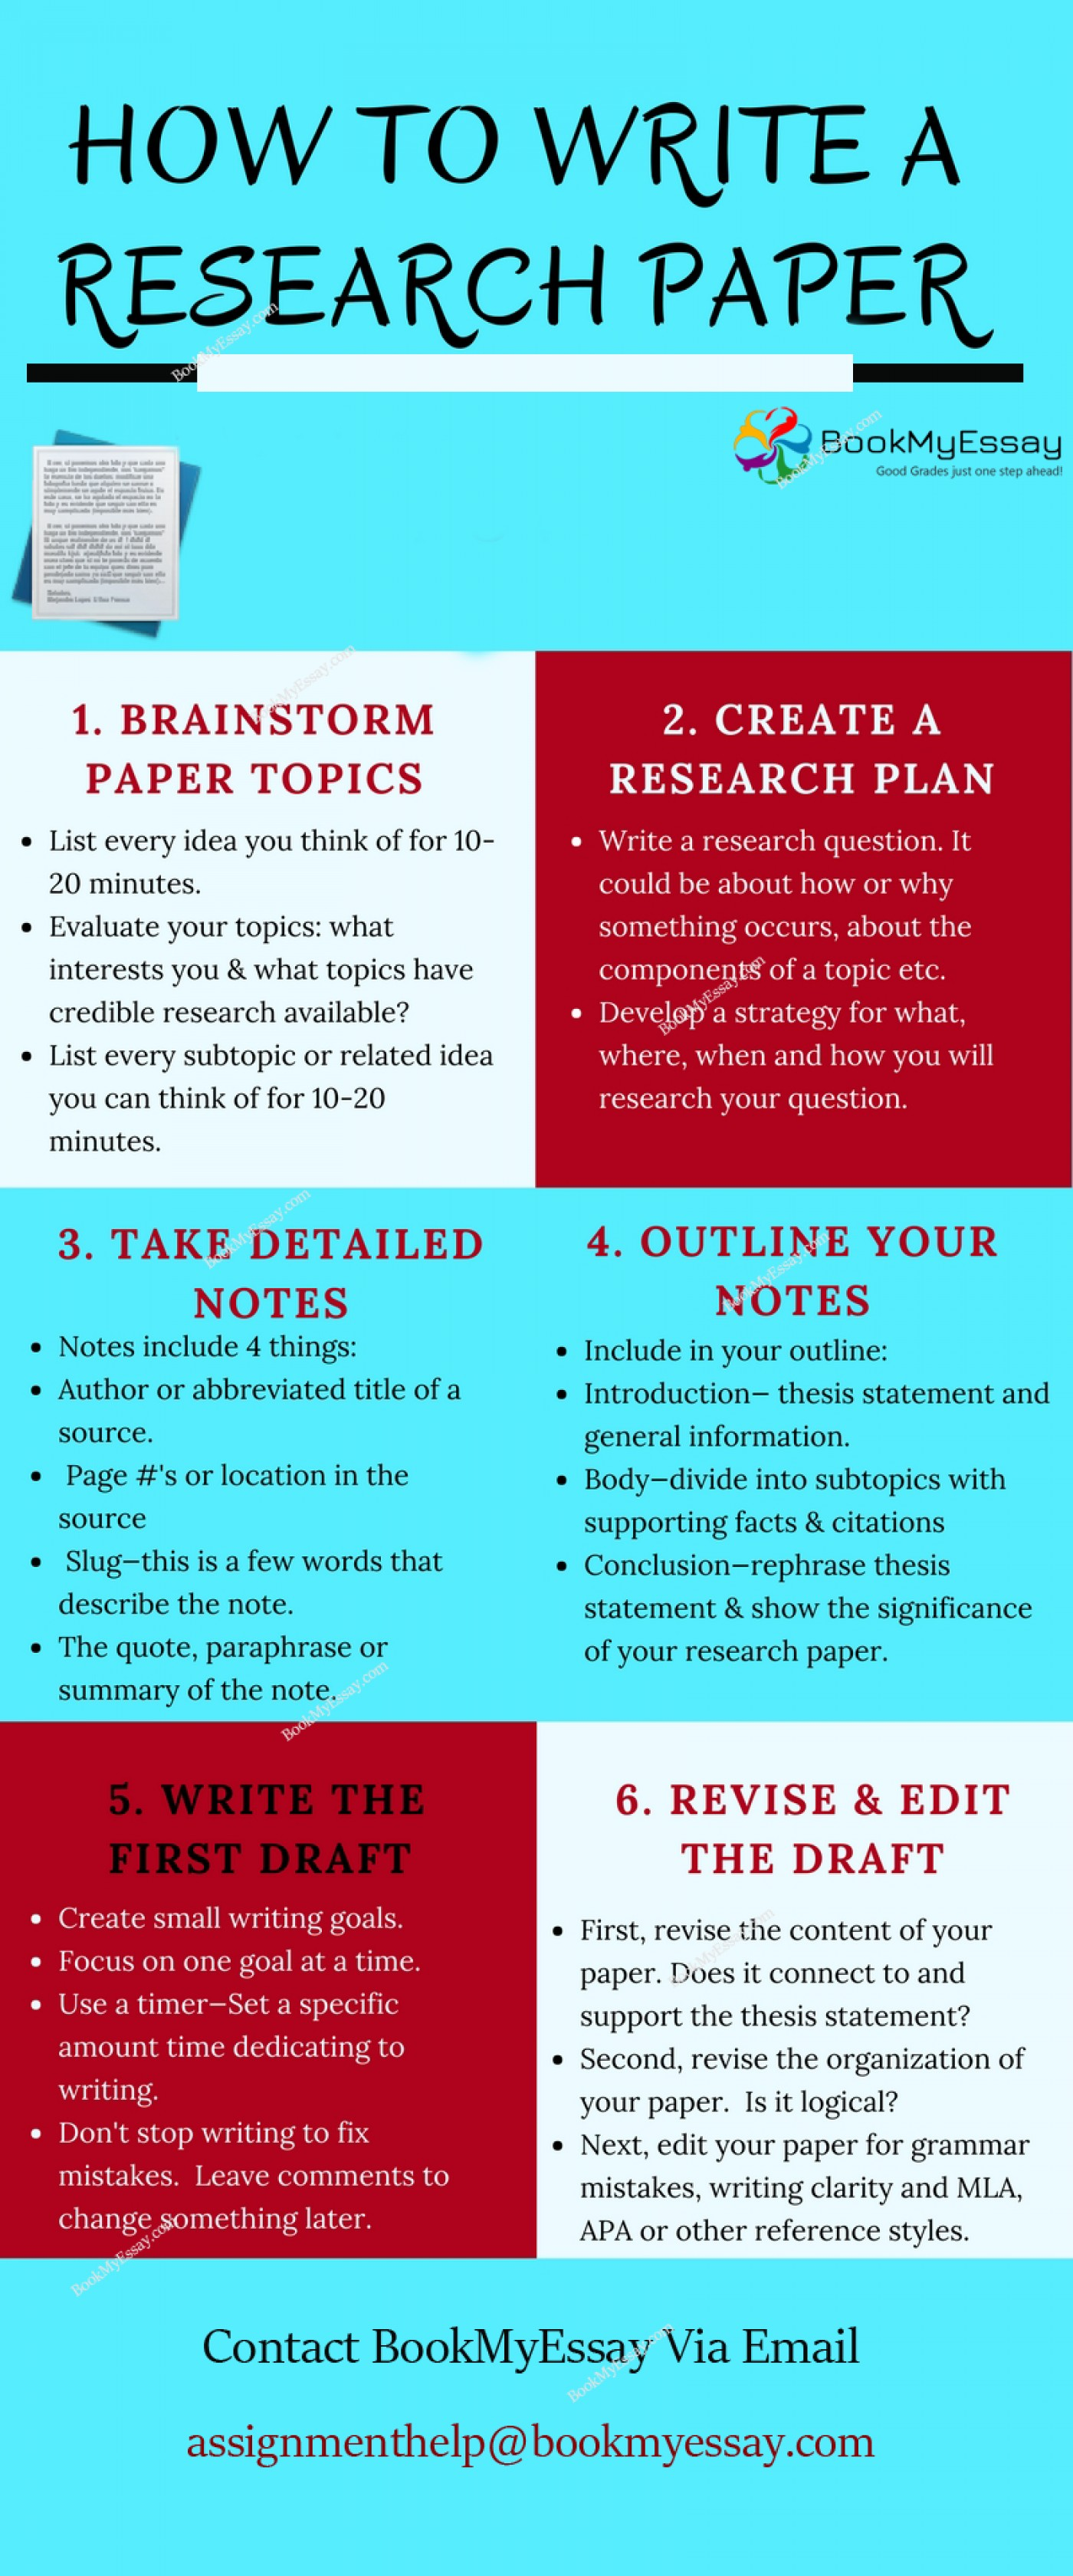 002 Researchs Writing Service Outstanding Research Papers Paper Services In Chennai Mumbai College Reviews 1400